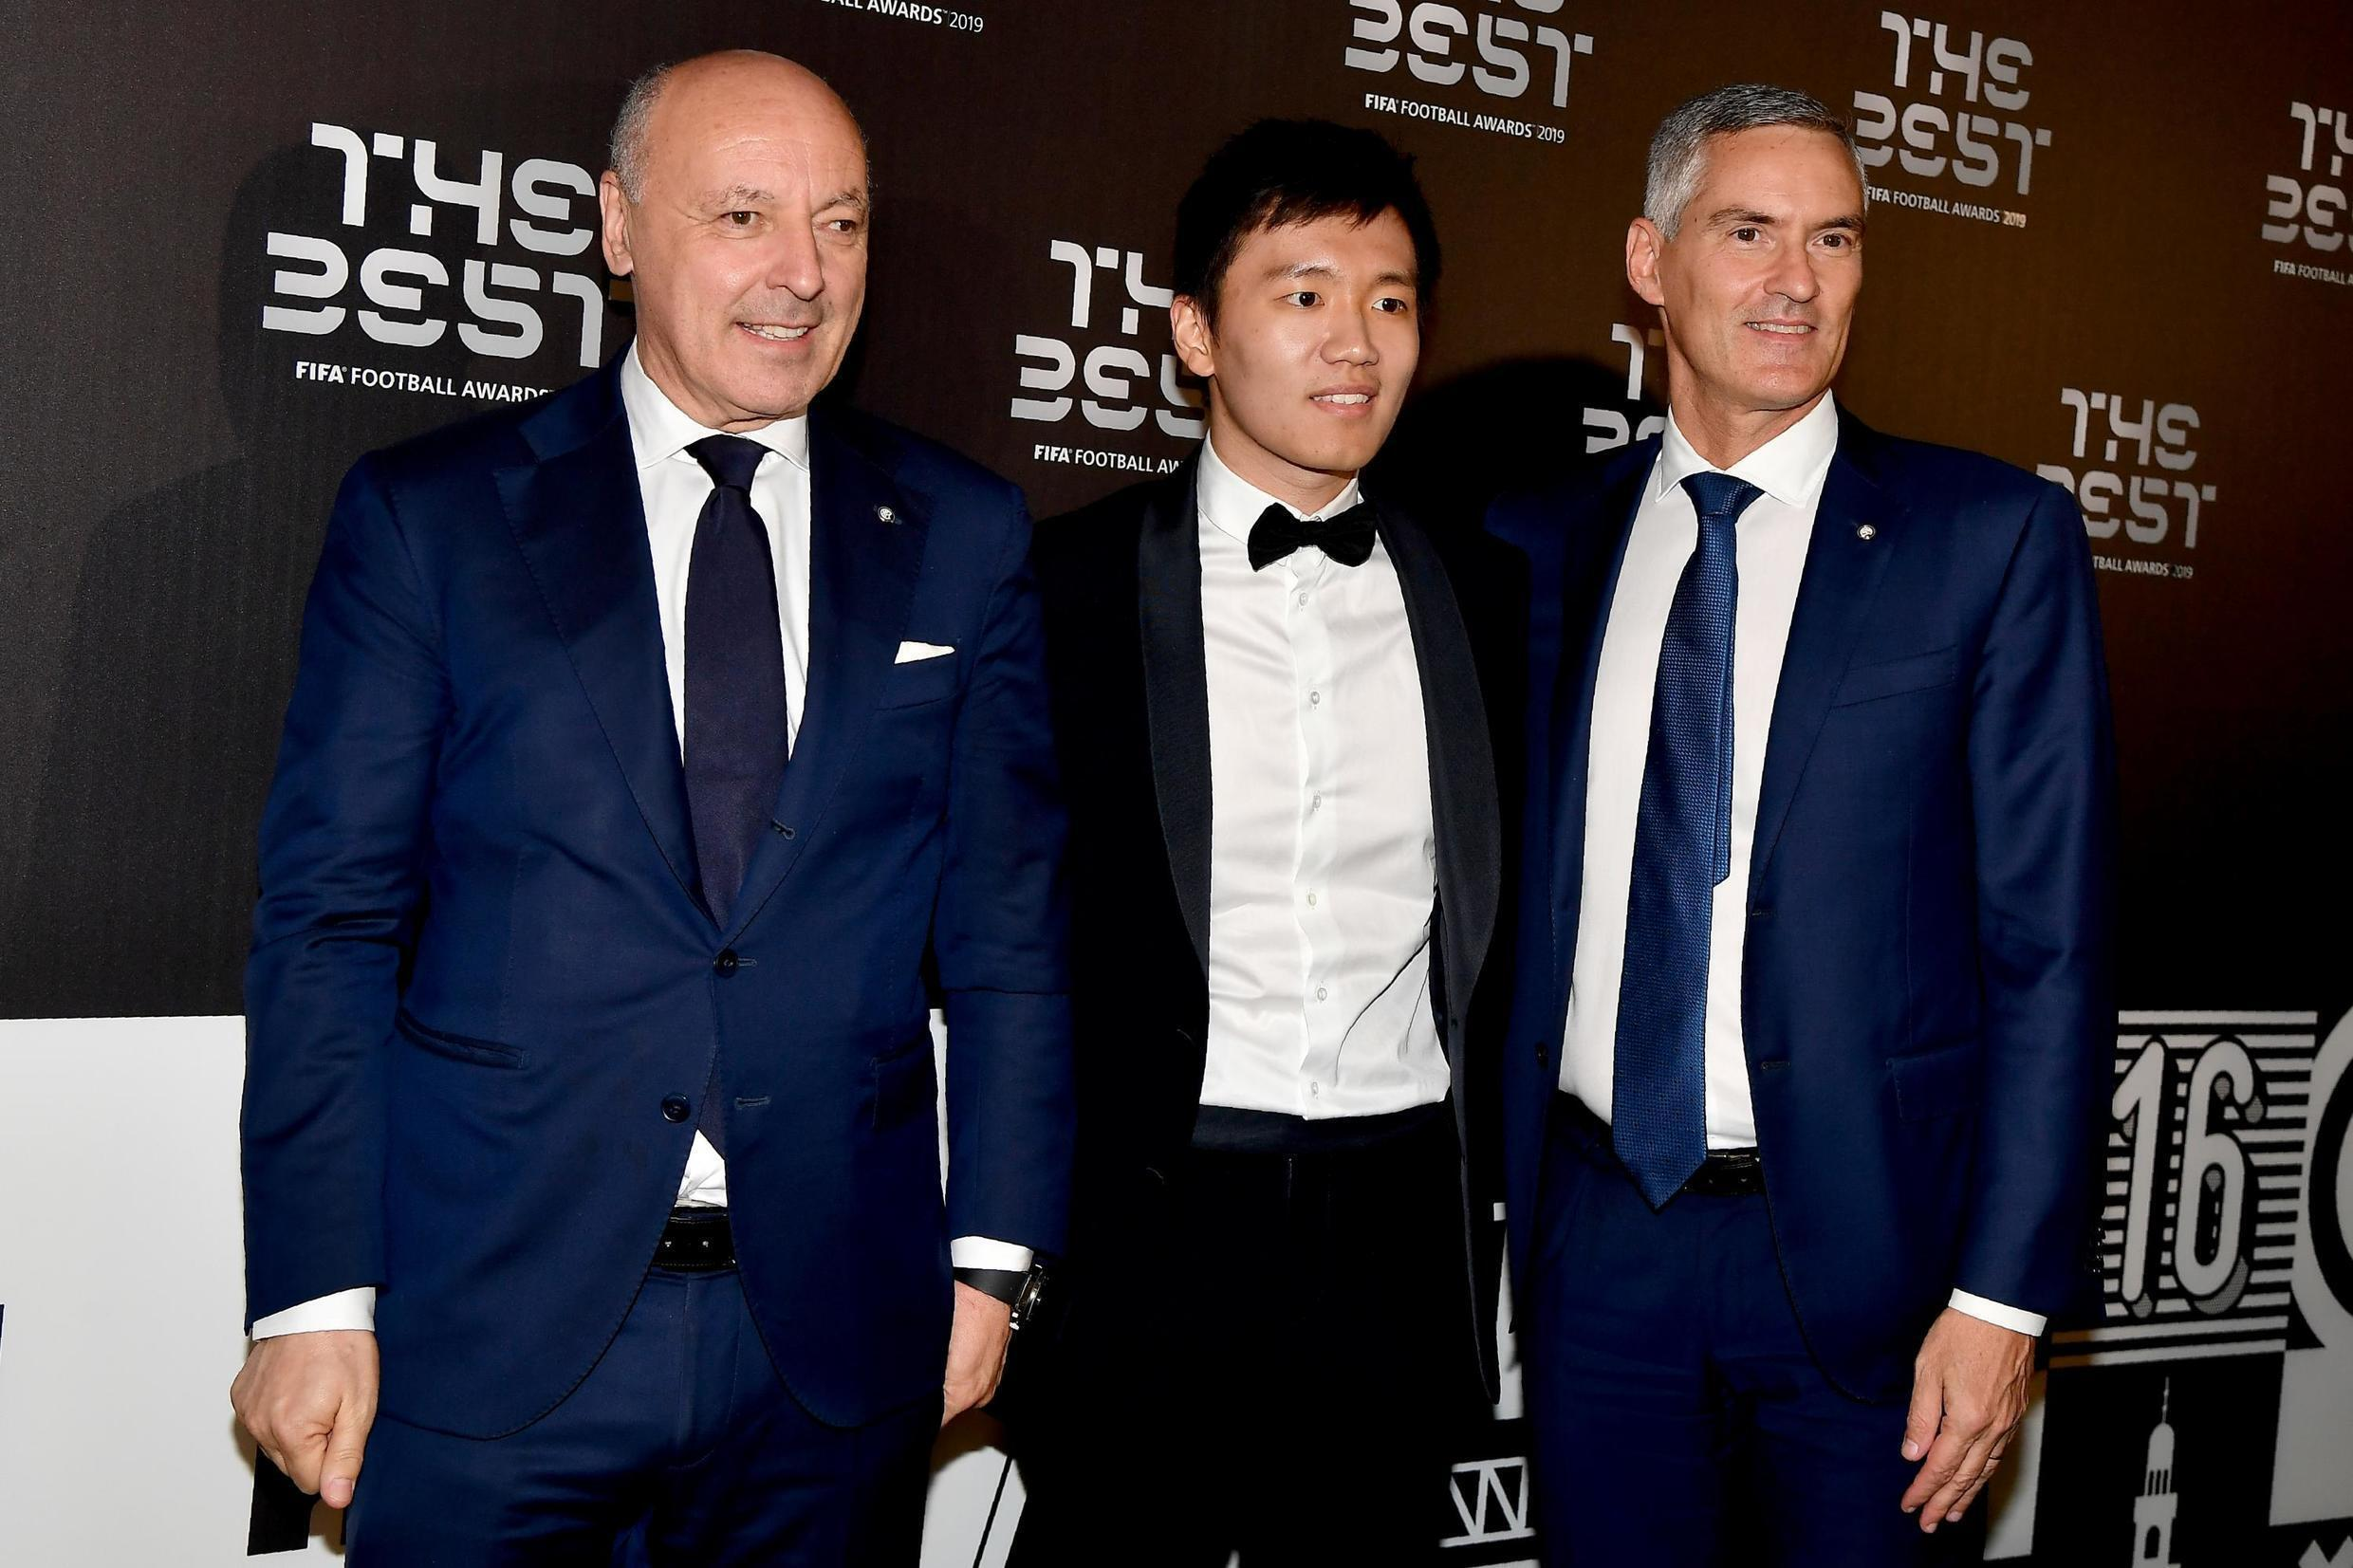 Inter Milan chairman Steven Zhang (centre) flanked by club executives Giuseppe Marotta (left) and Alessandro Antonello, lambasted the Italian league president over the rescheduling of matches since the new coronavirus spread into Italy.